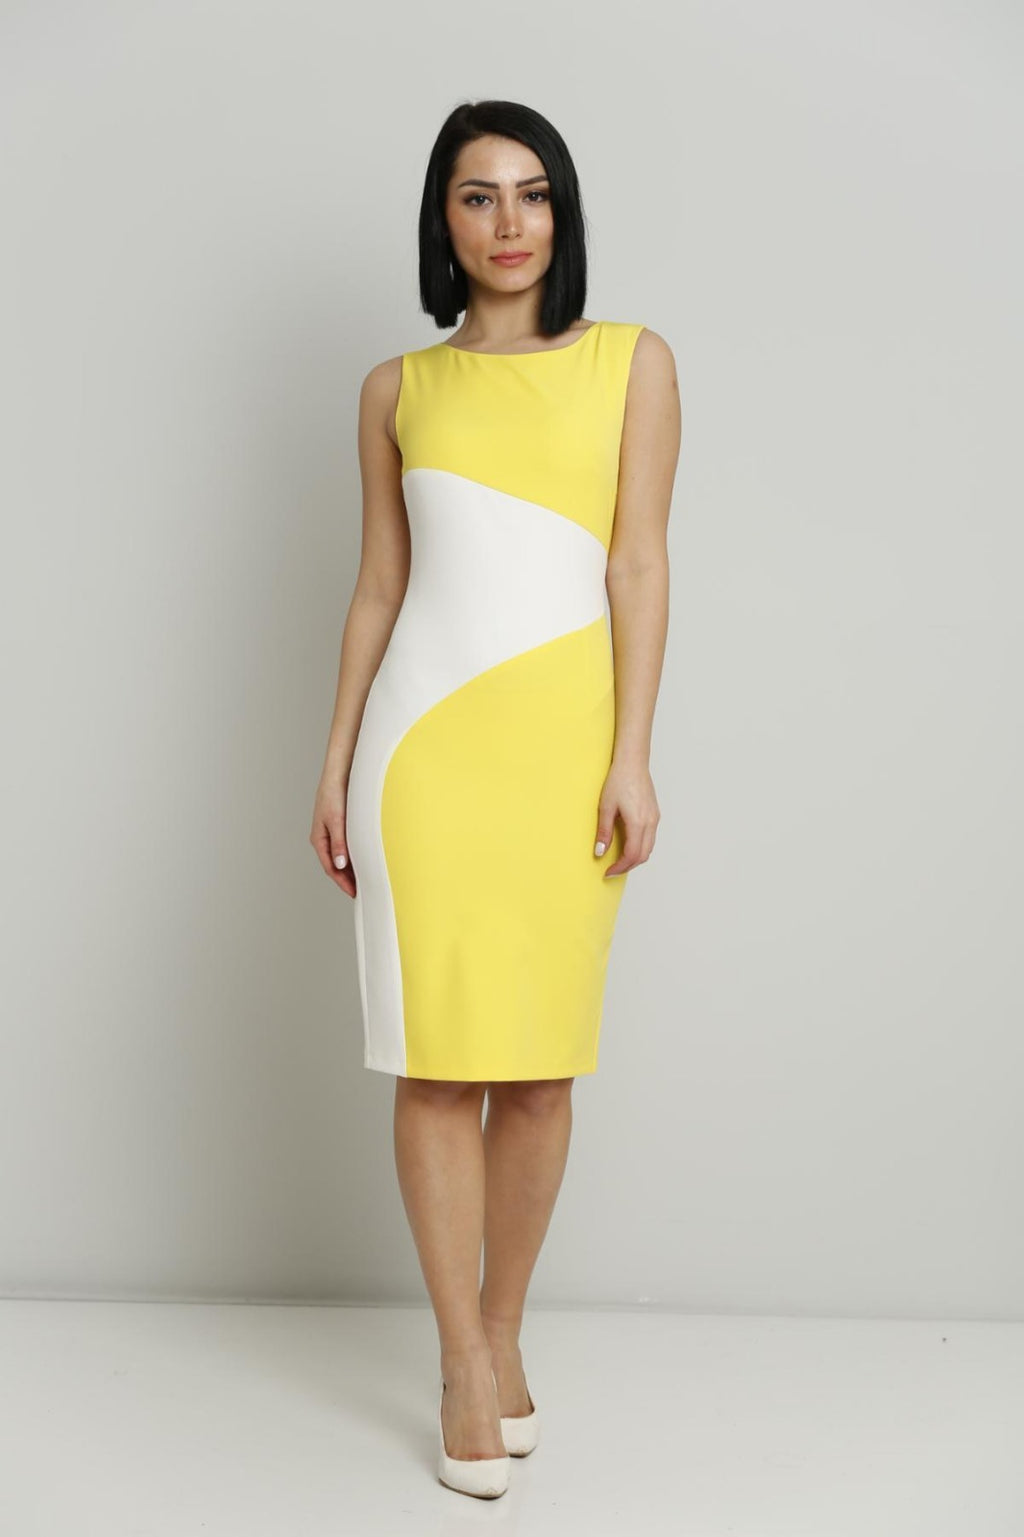 Sleeveless Midi Dress - Yellow and White